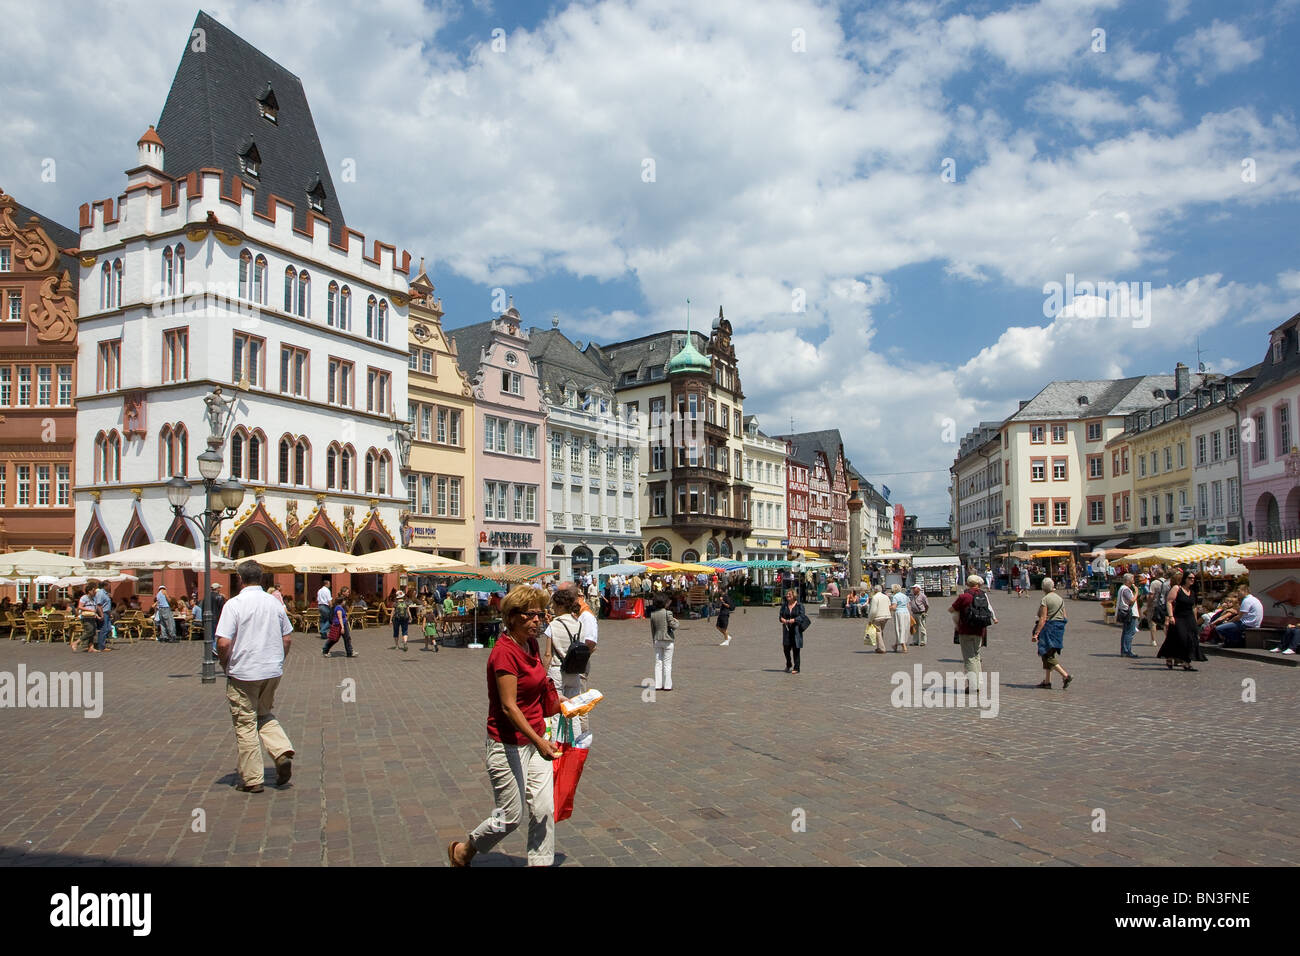 Main market with Steipe, Trier, Rhineland-Palatinate, Germany Stock Photo